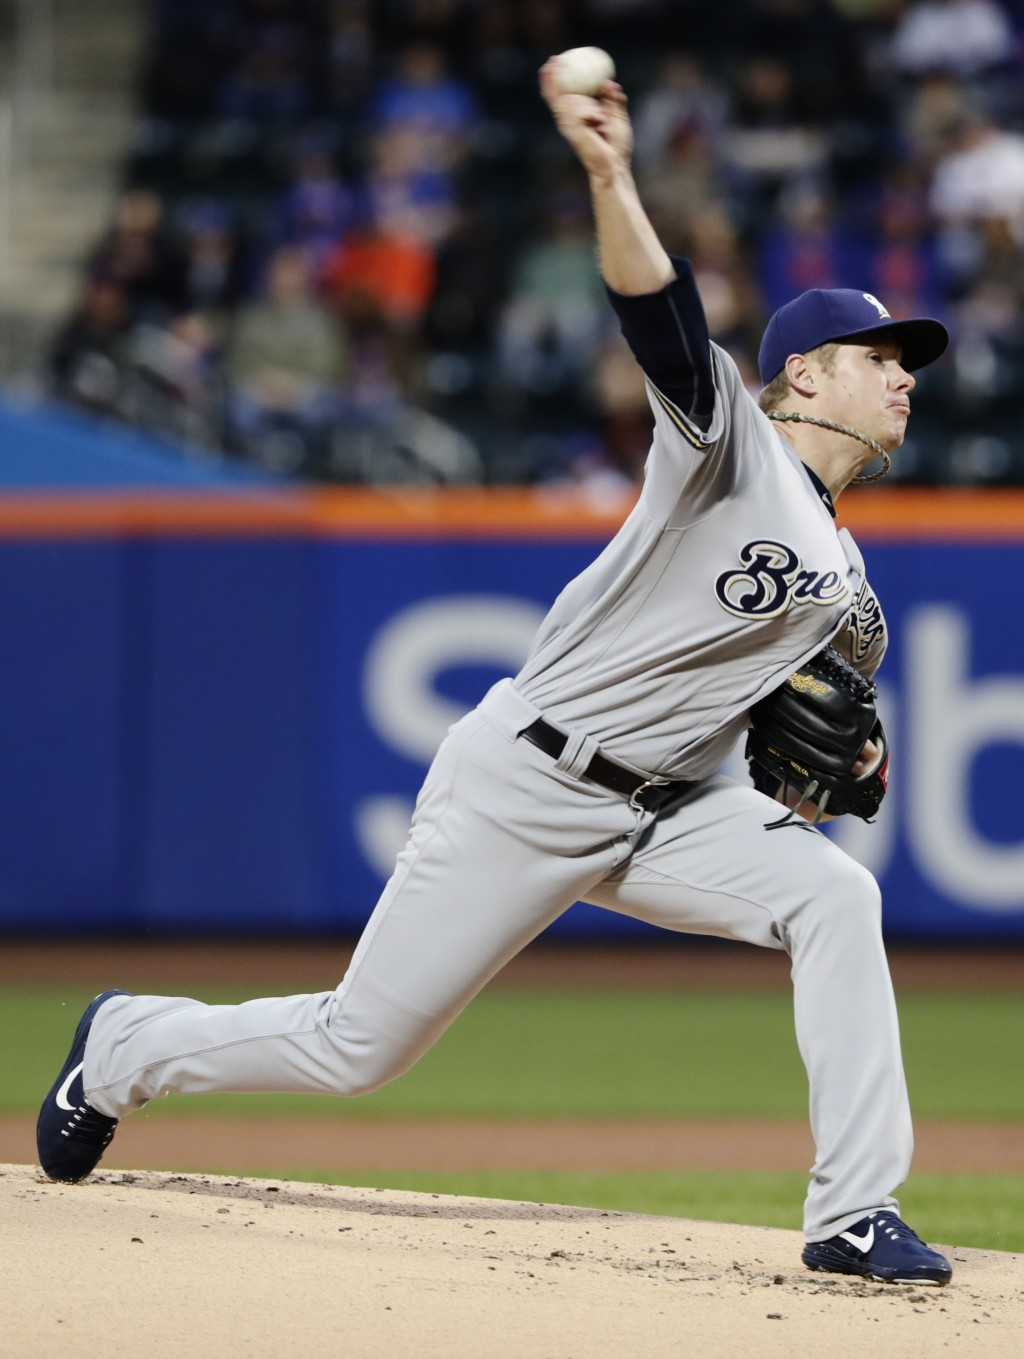 Milwaukee Brewers' Chase Anderson delivers a pitch during the first inning of a baseball game against the New York Mets Saturday, April 14, 2018, in N